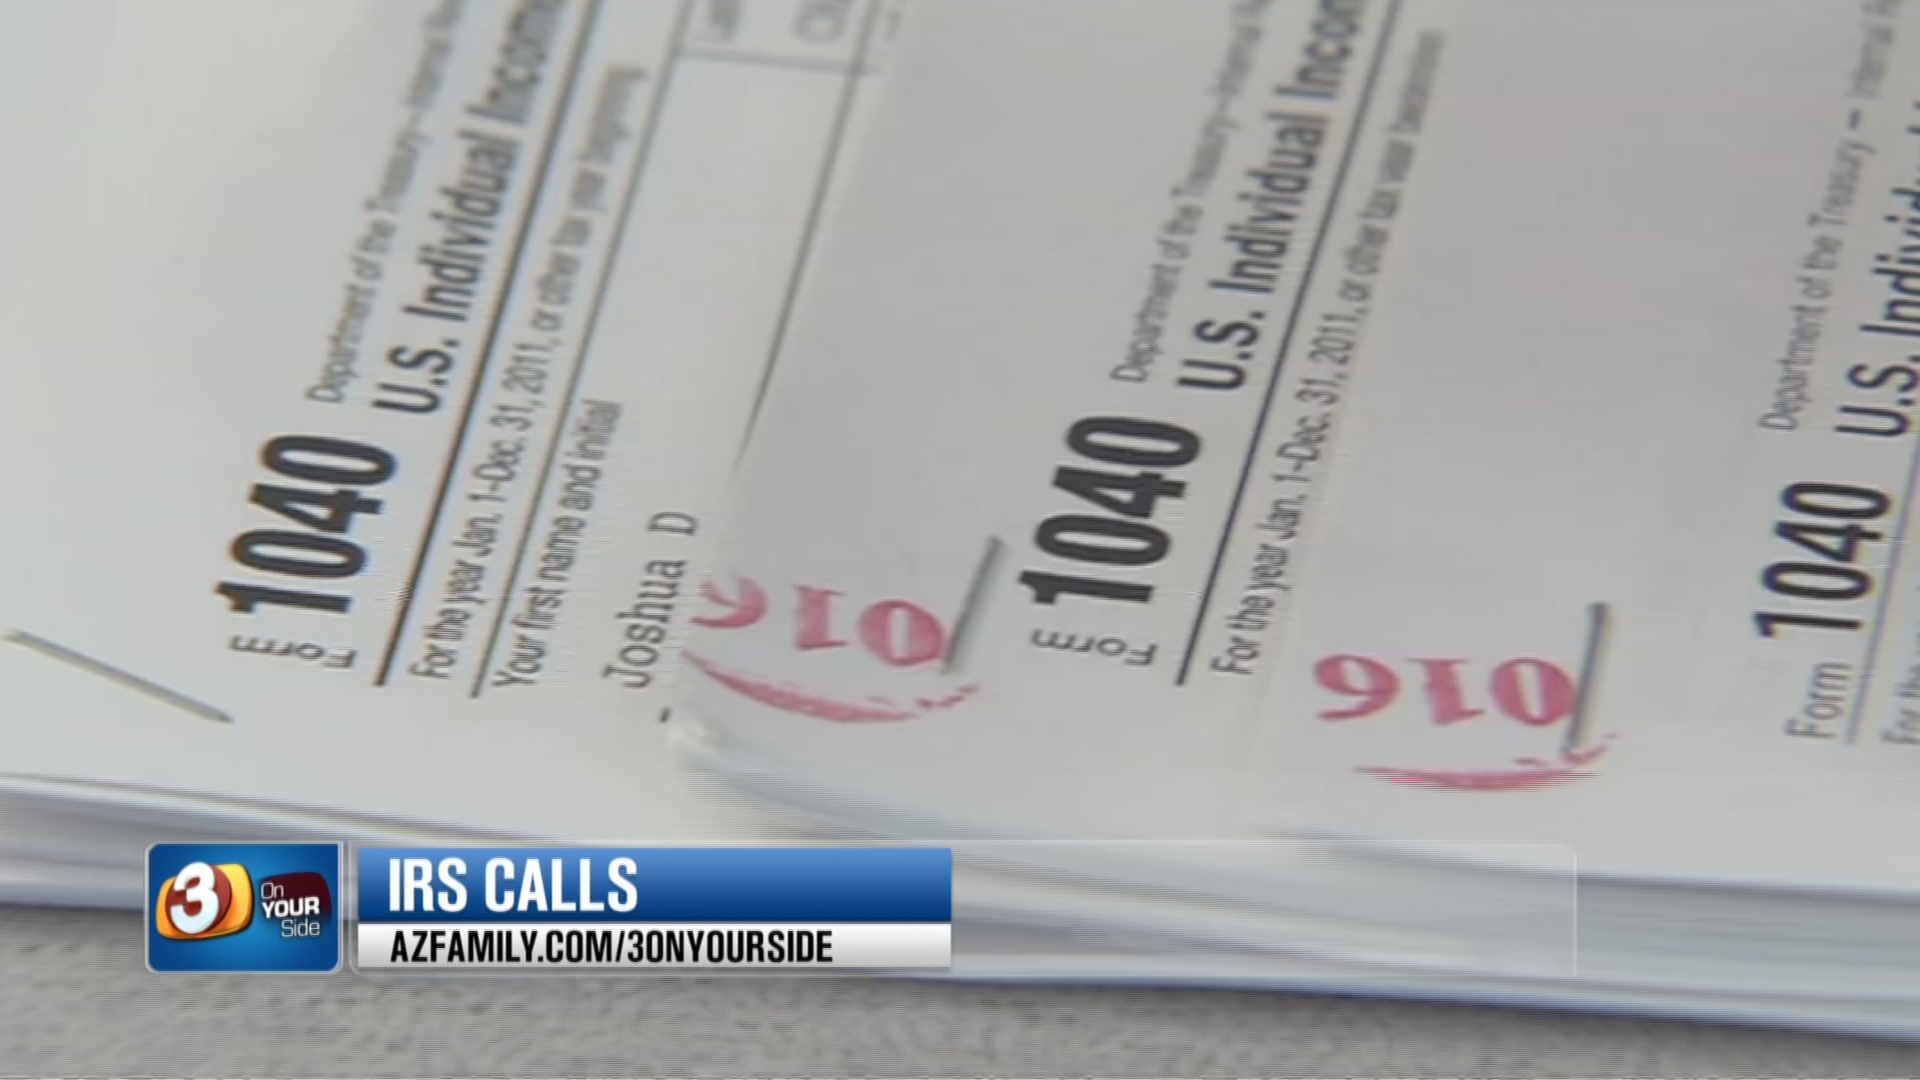 The IRS claims targeted taxpayers will get letters from the agency and the debt collector first before the phone calls are made. (Source: 3TV/CBS 5)